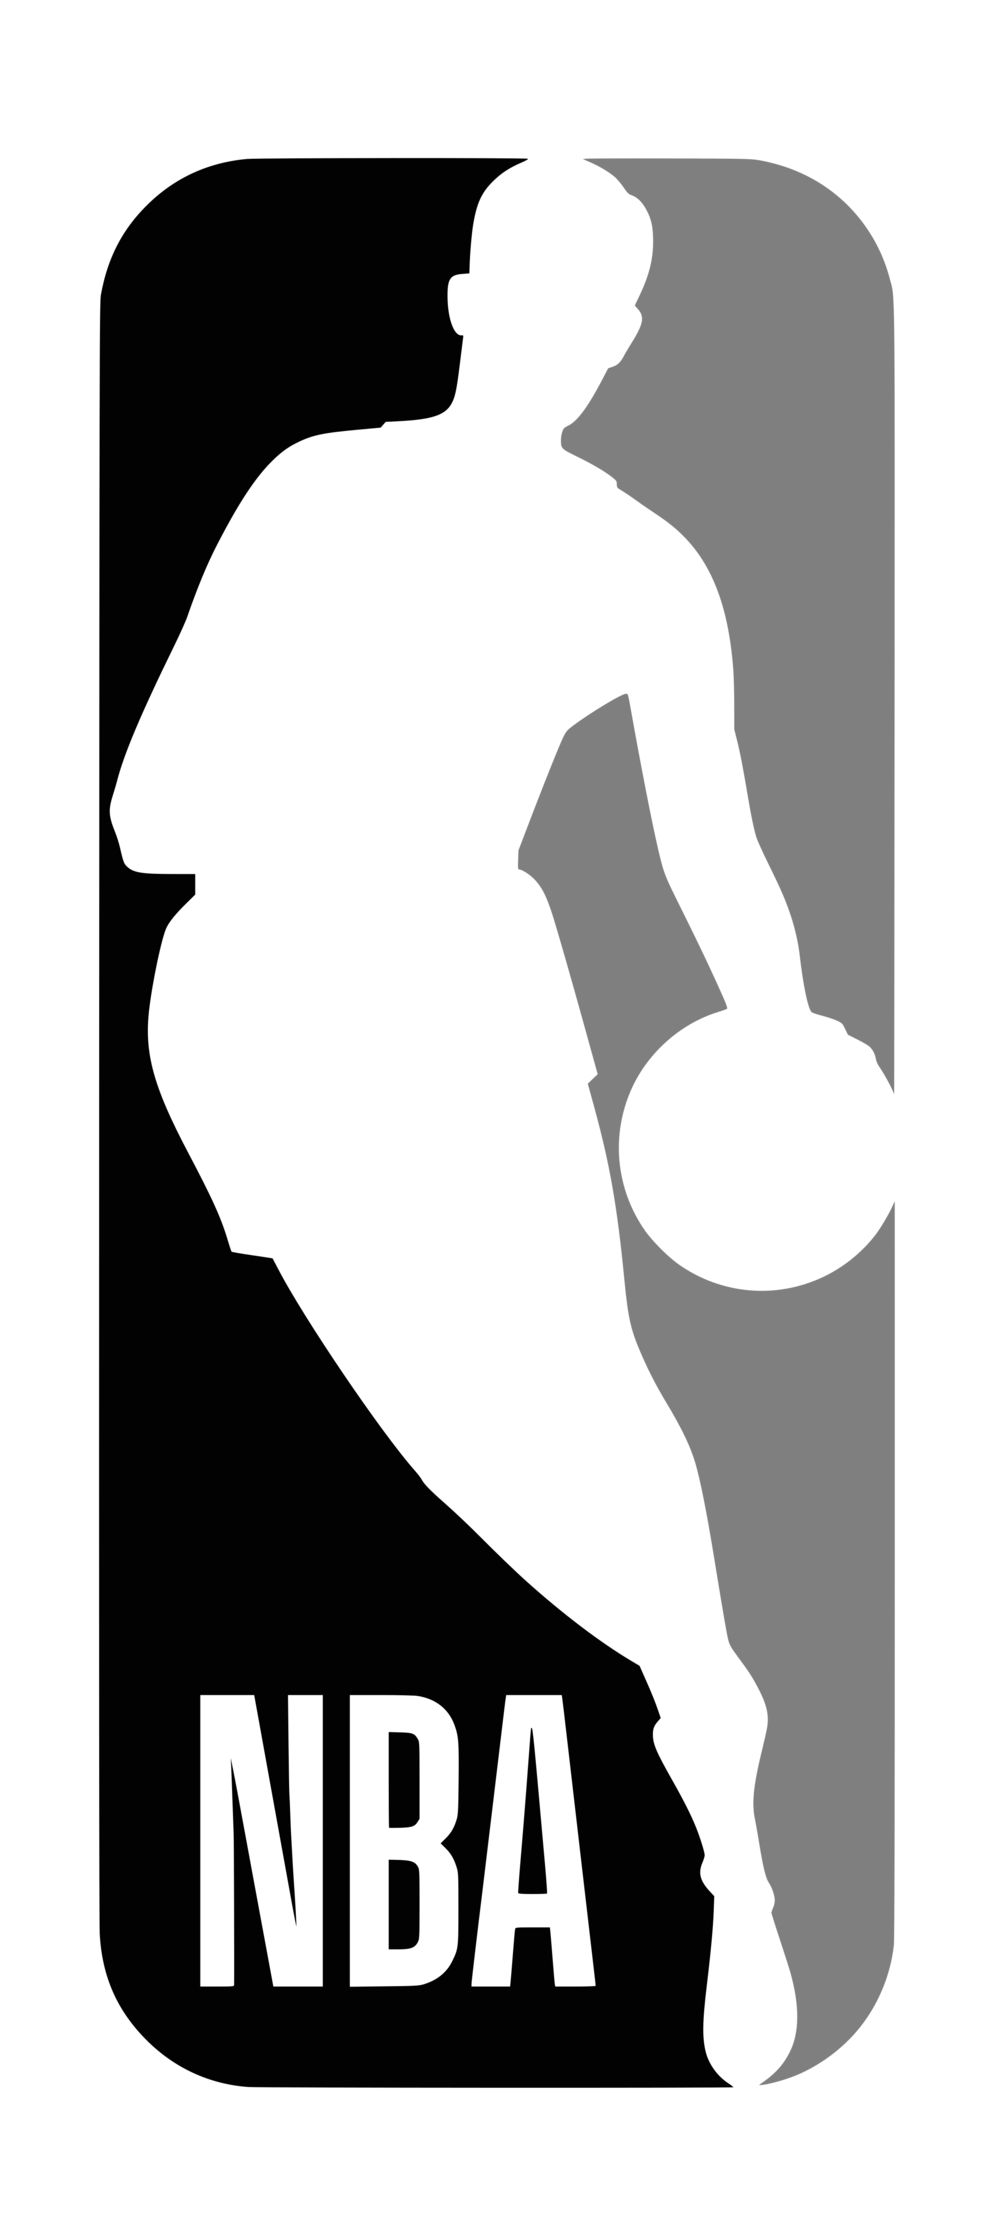 nba-logo-black-transparent.png